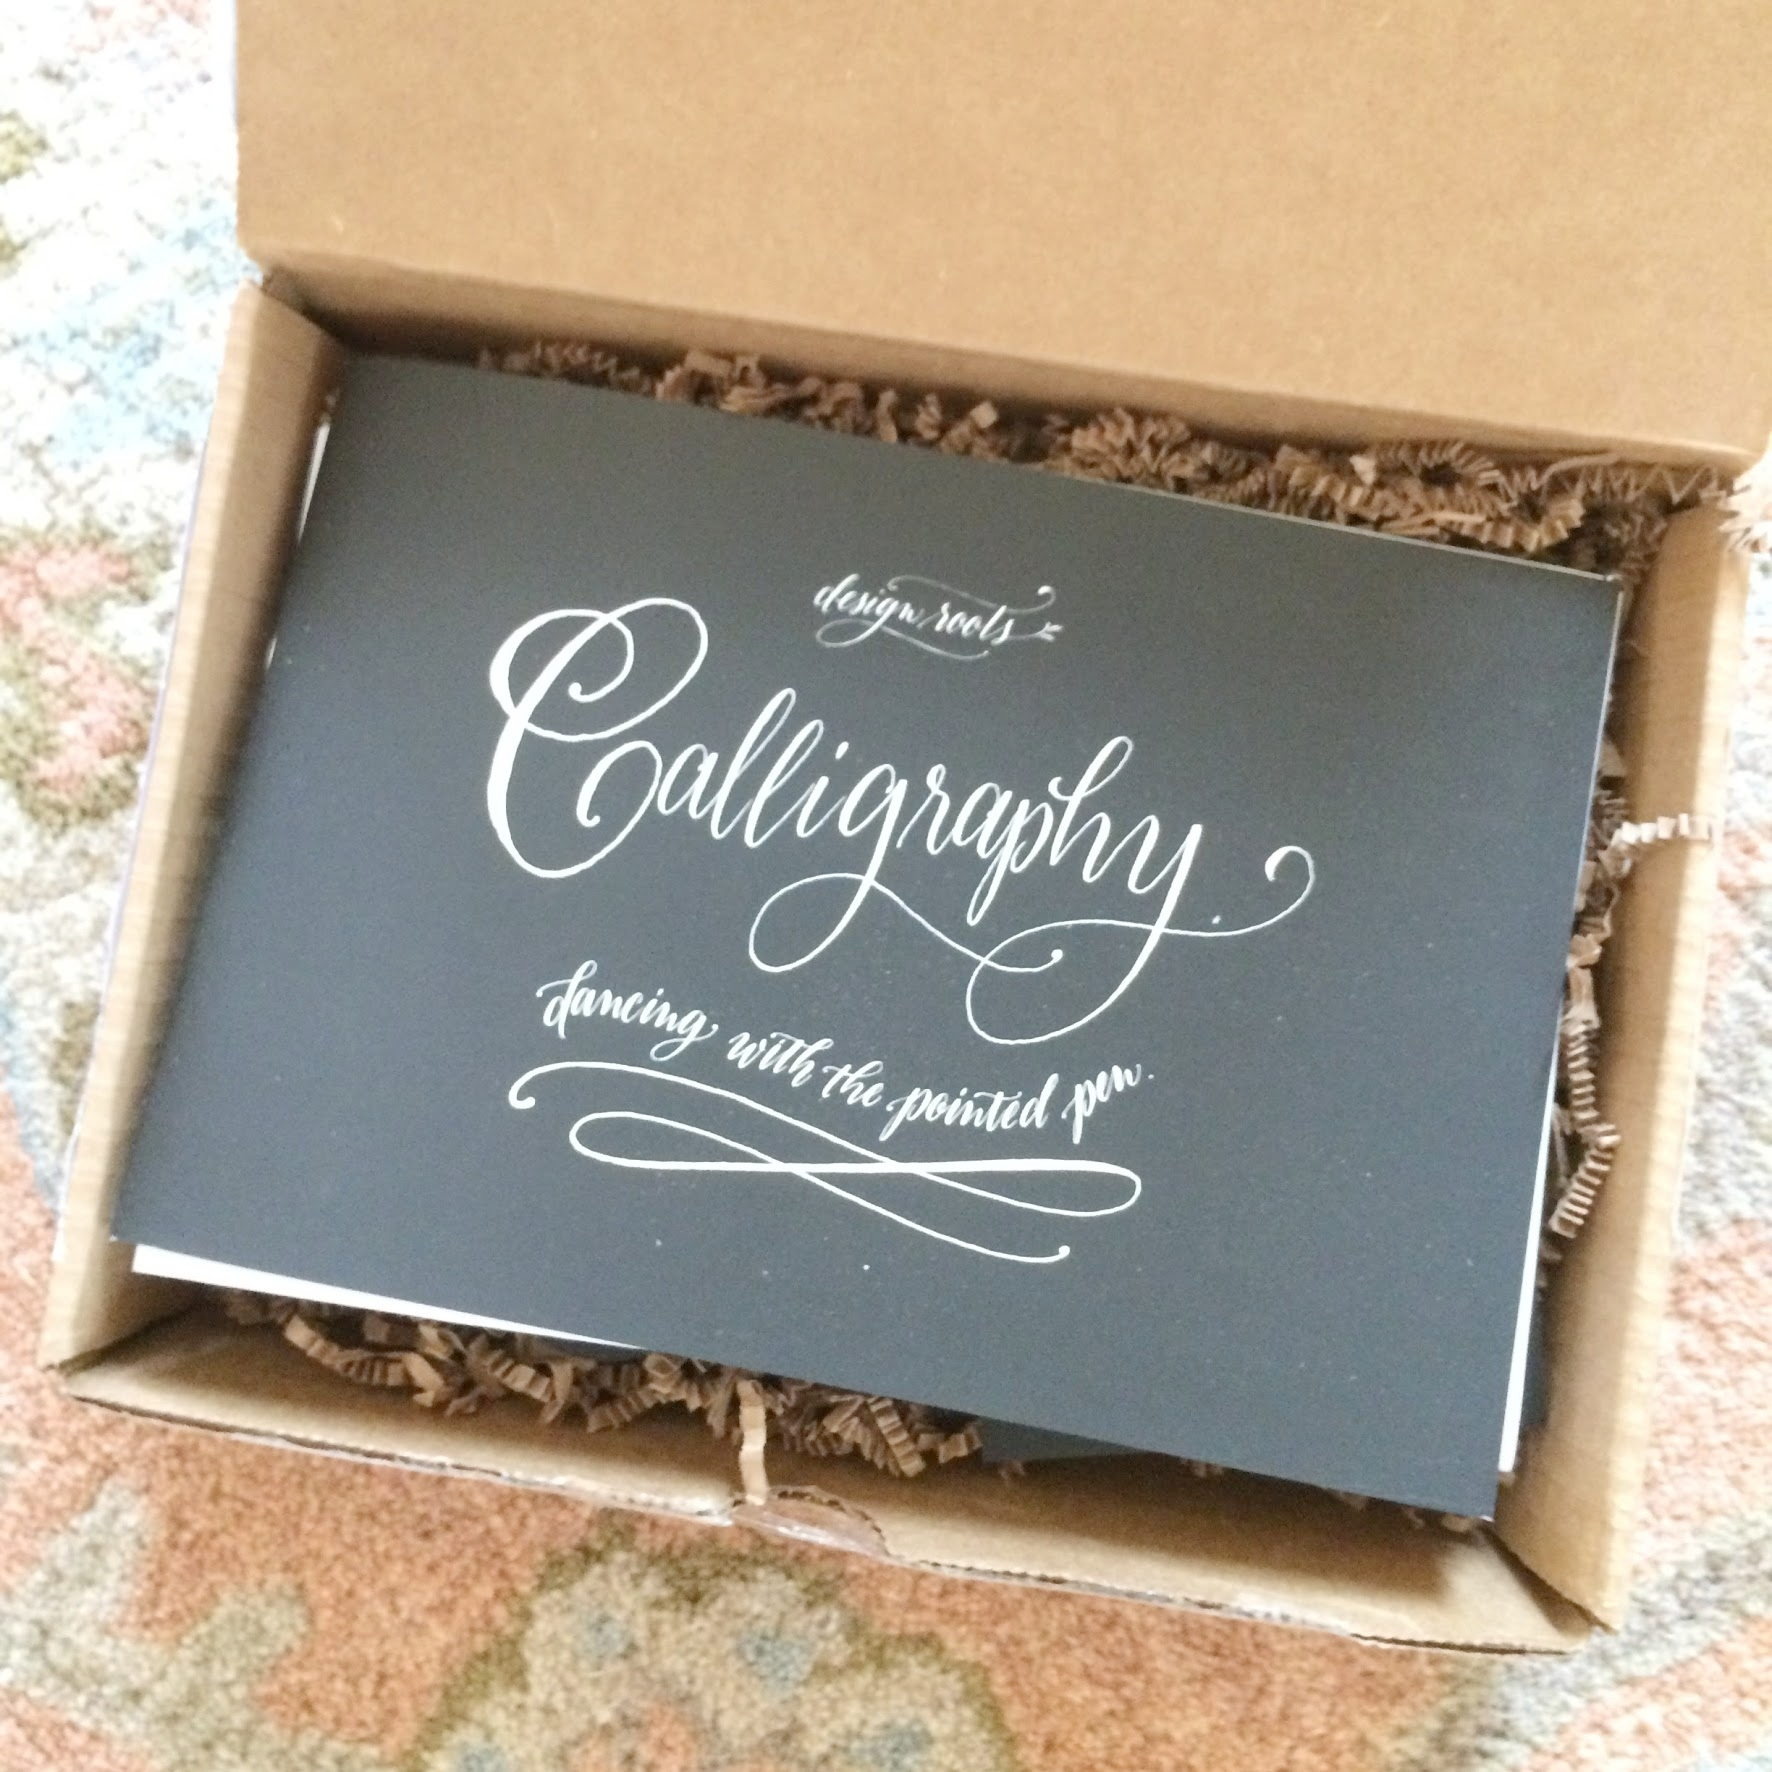 calligraphy kit by @designroots